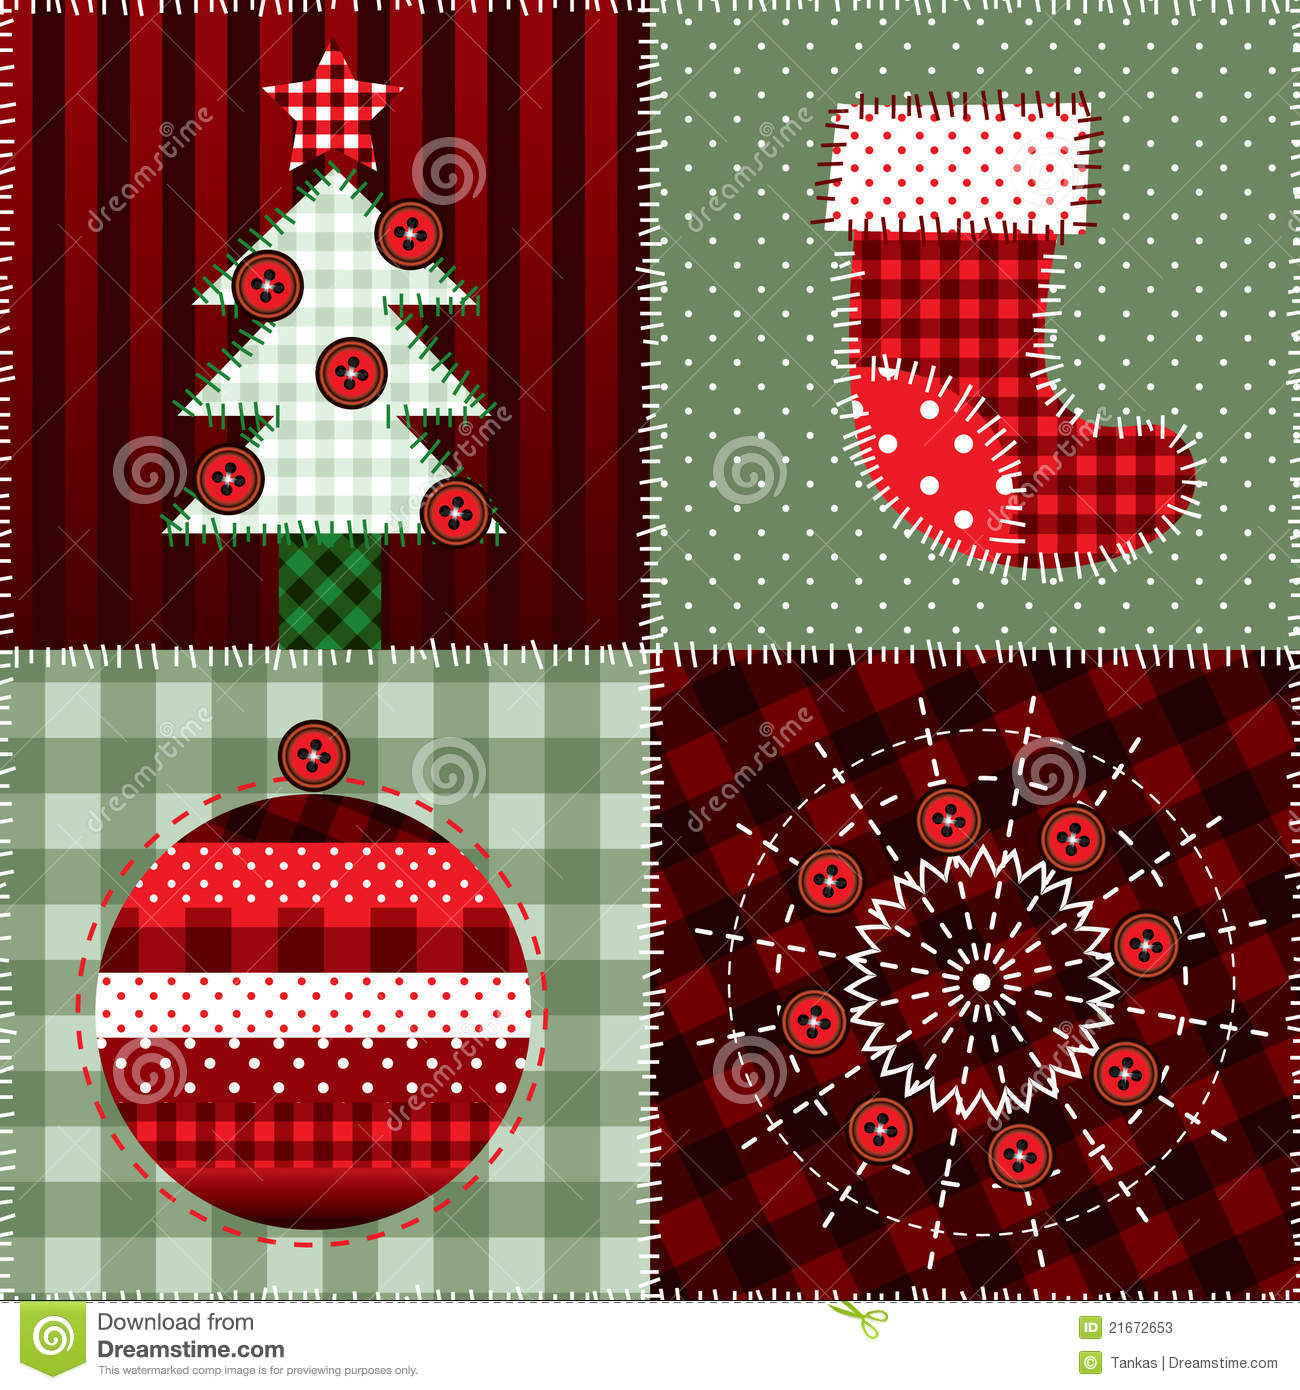 Christmas Quilt Pattern Stock Vector Illustration Of Tree 21672653